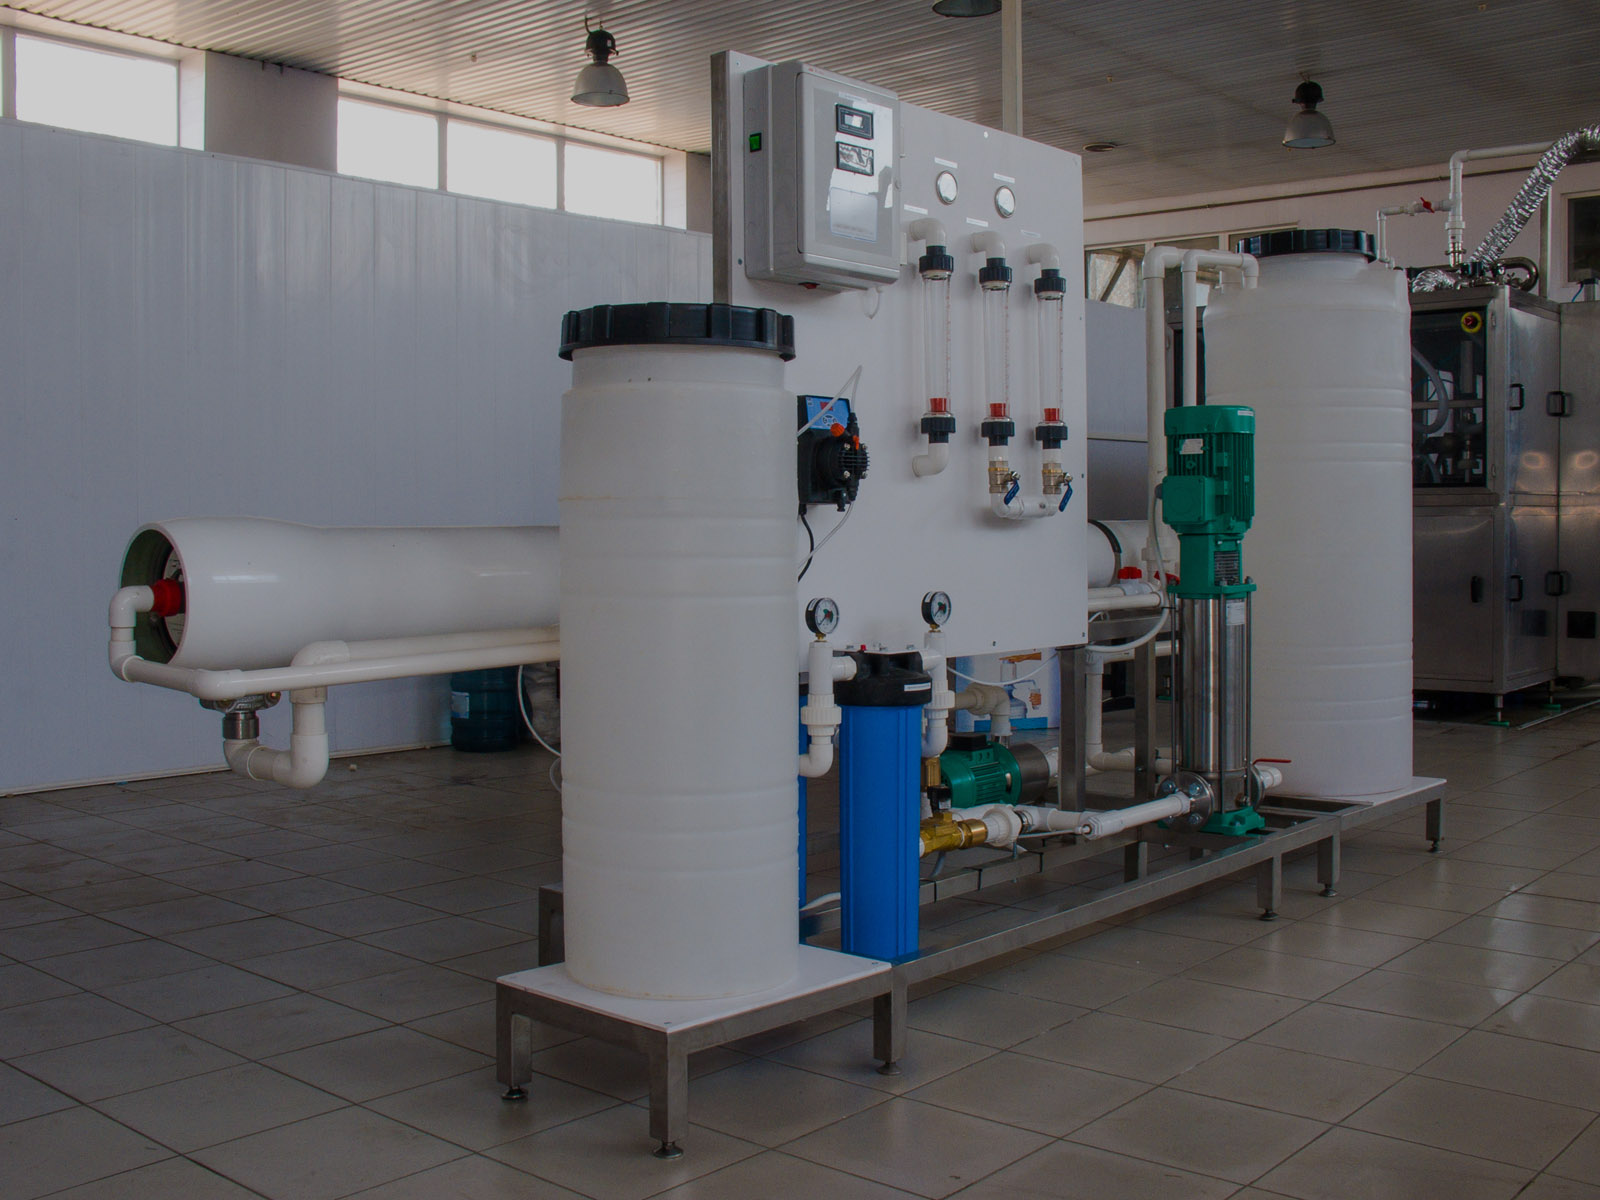 Reverse osmosis system is installed in commercial building